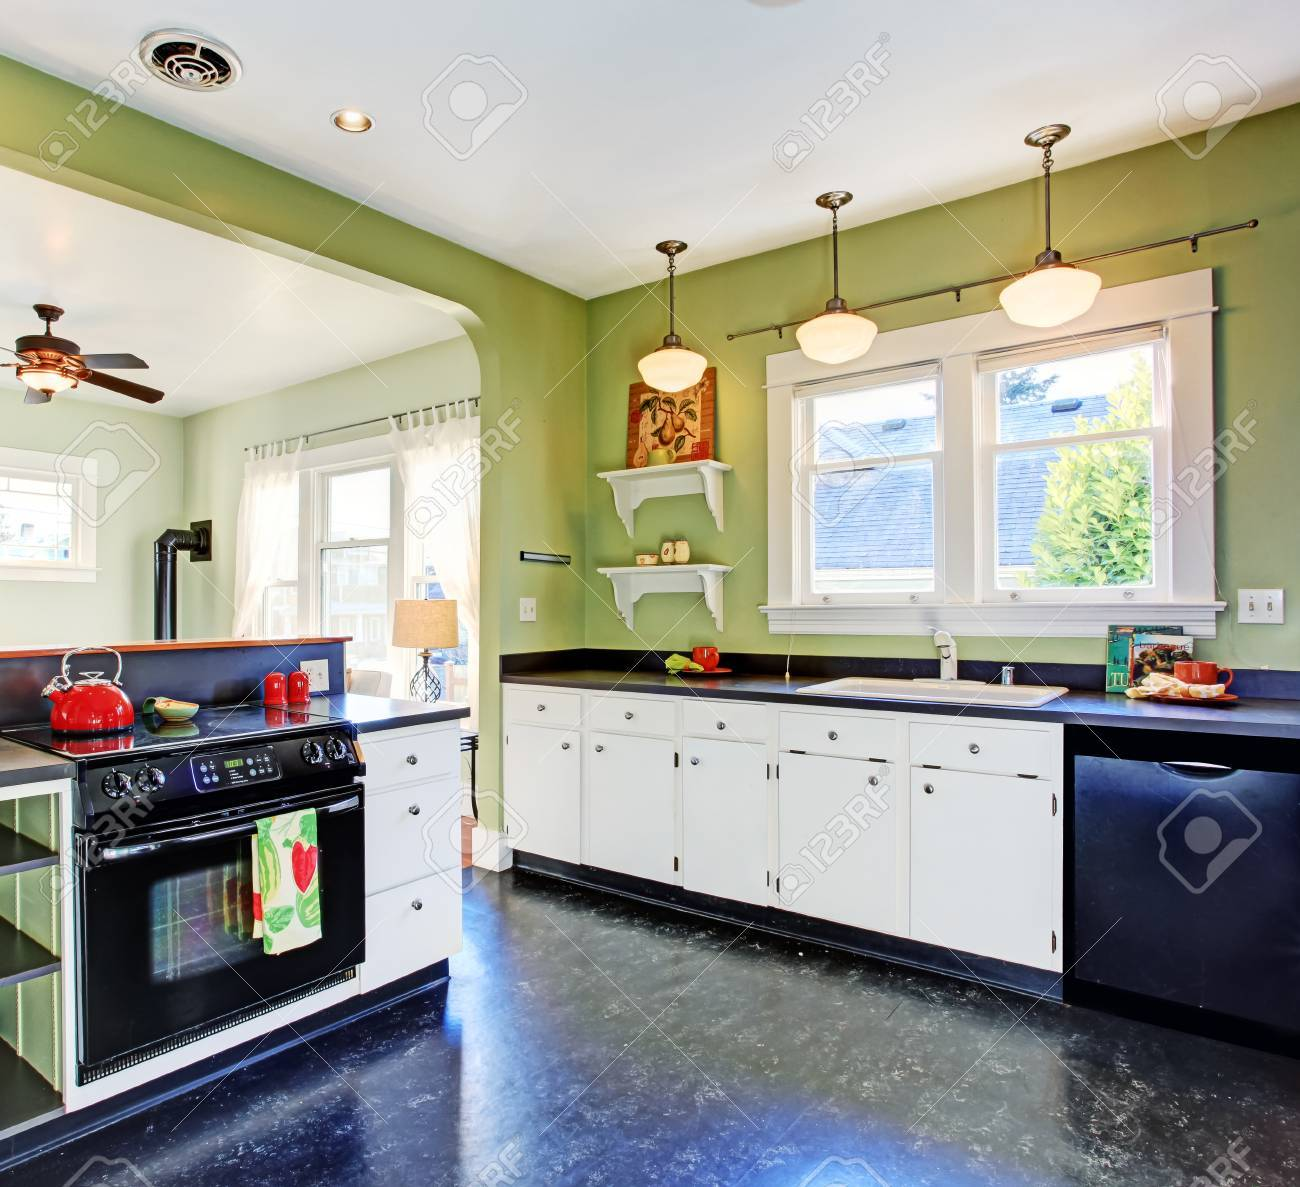 Uncategorized Green Appliances Kitchen kitchen room with green walls white cabinets and black appliances stock photo 28041784